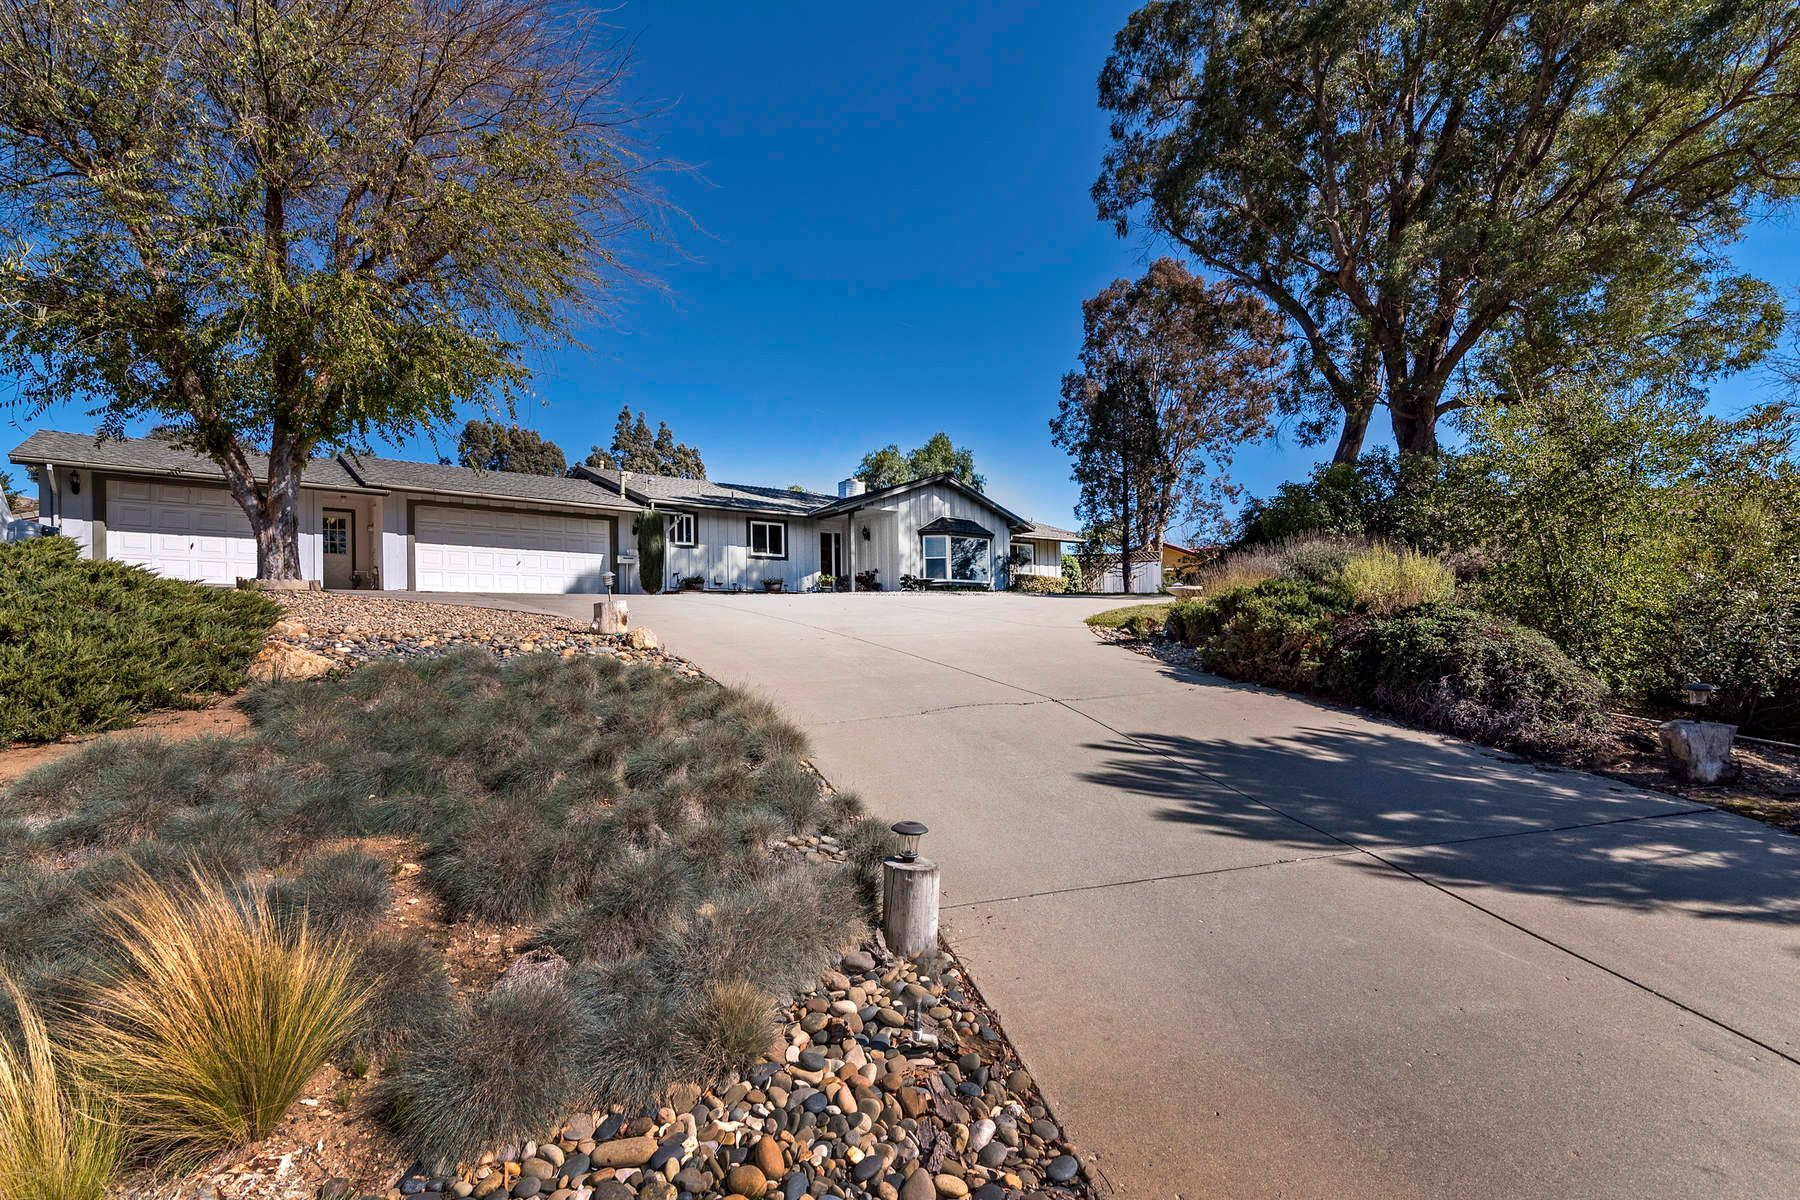 Single Family Home for Sale at Sunrise Village 930 Skagen Drive, Solvang, California, 93463 United States